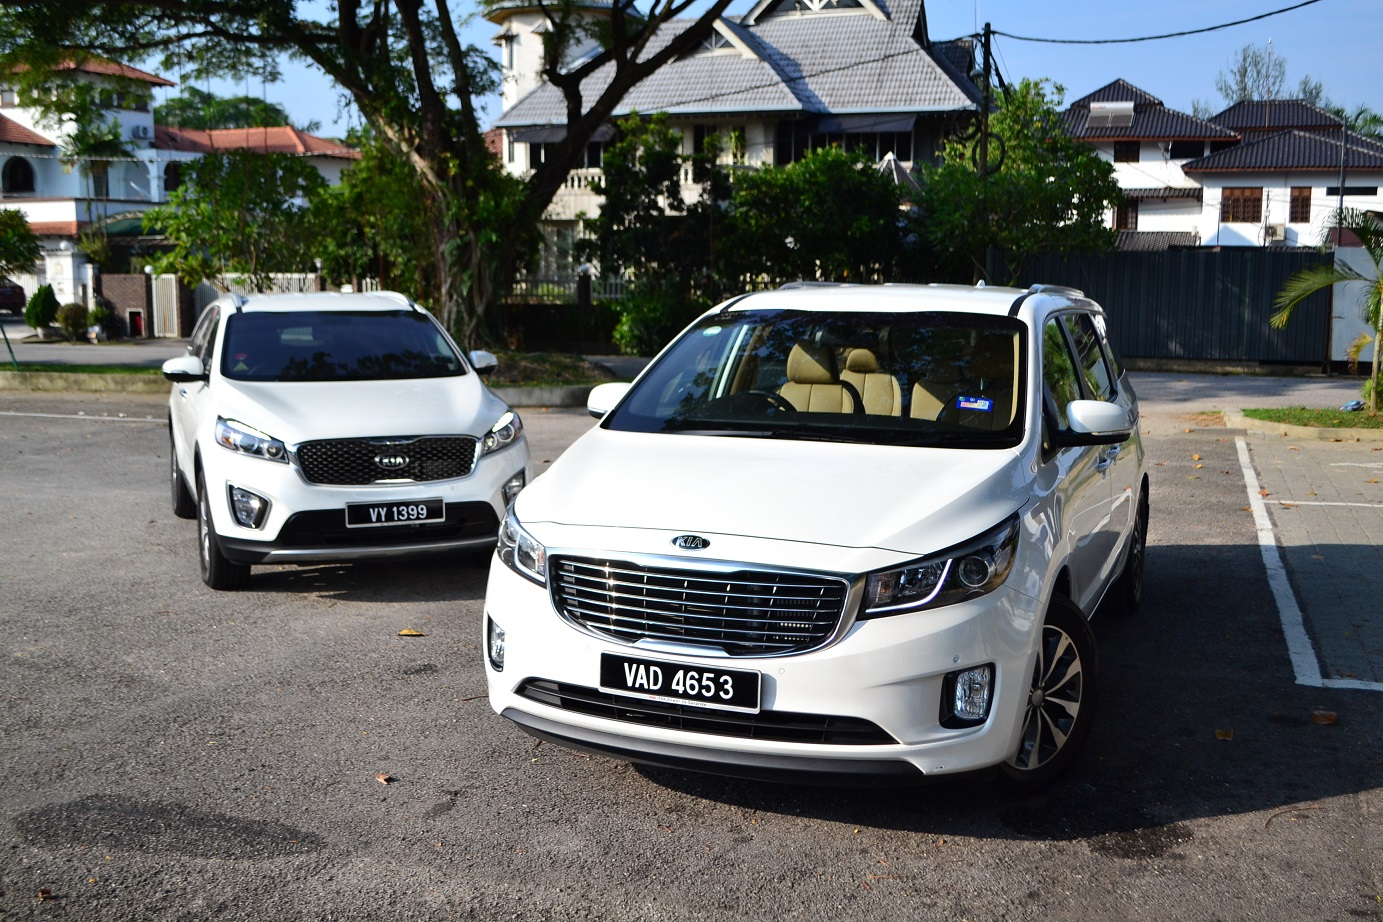 ... both the Sorento and Carnival look good with a large grille in the  center, flanked by sweeping headlamps that's accentuated by a lower skid  plate below ...